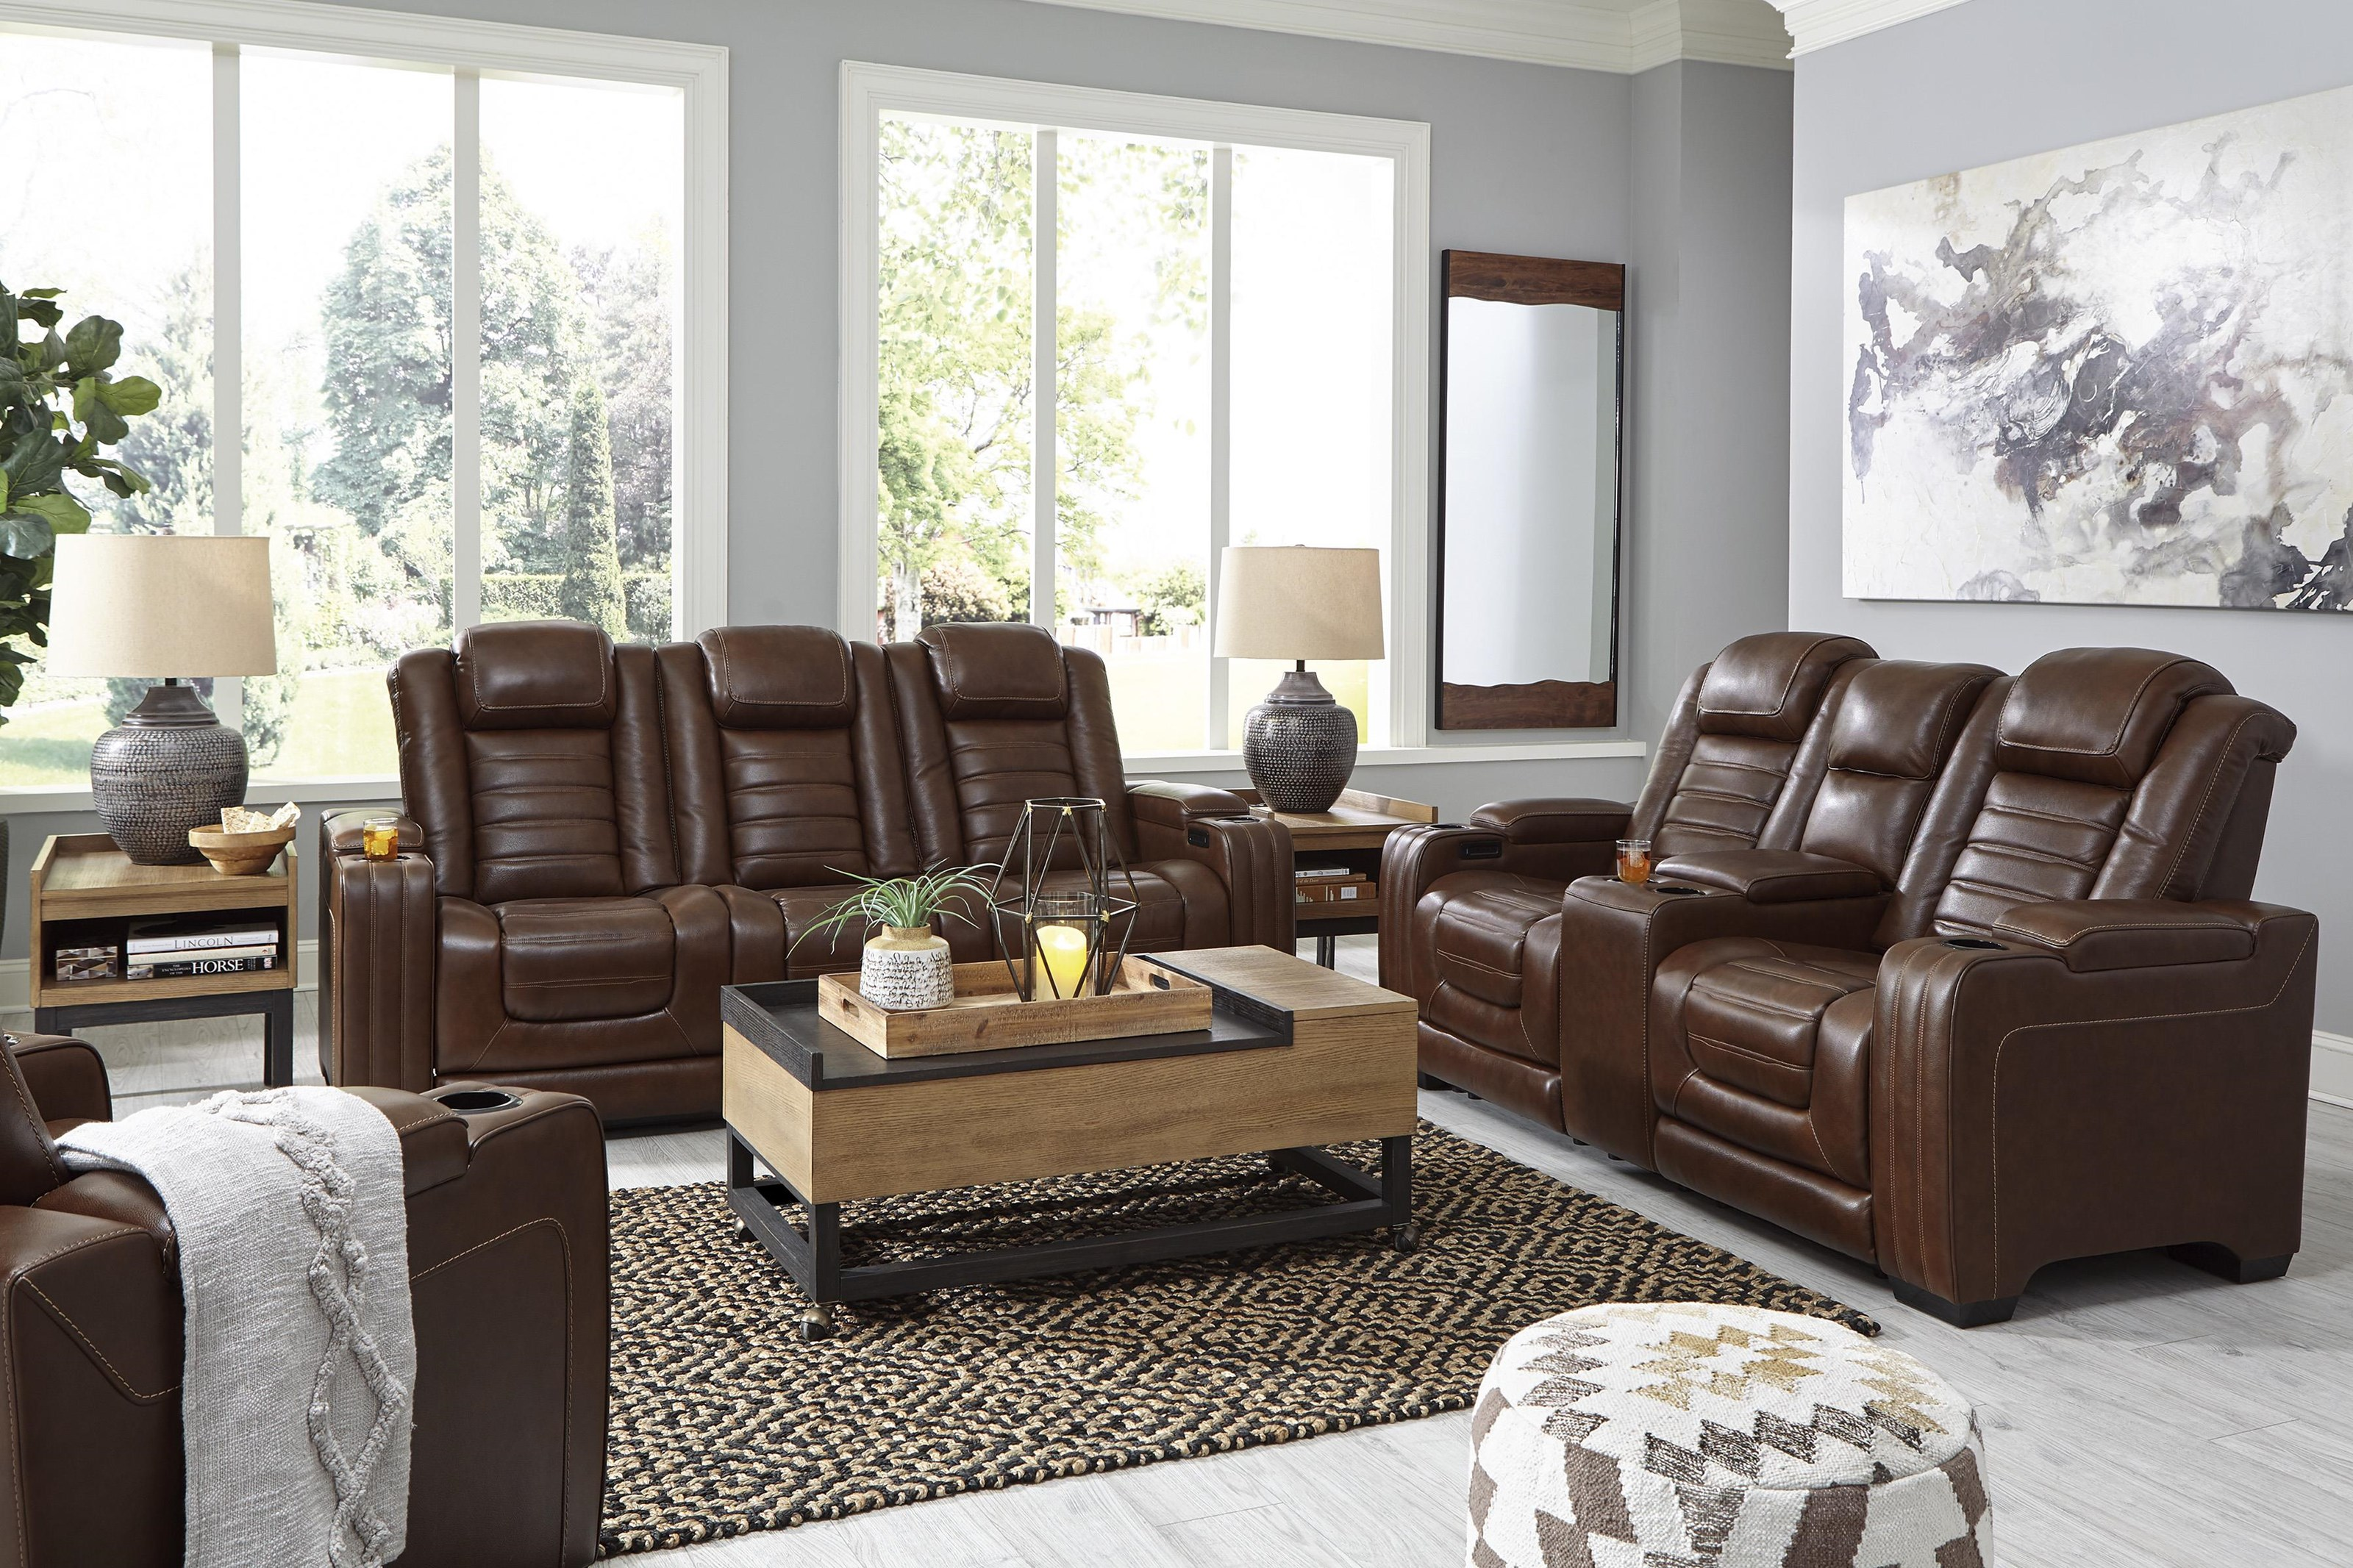 Backtrack Poer Recliner Sofa and Power Recliner Set by Signature Design by Ashley at Sam Levitz Outlet